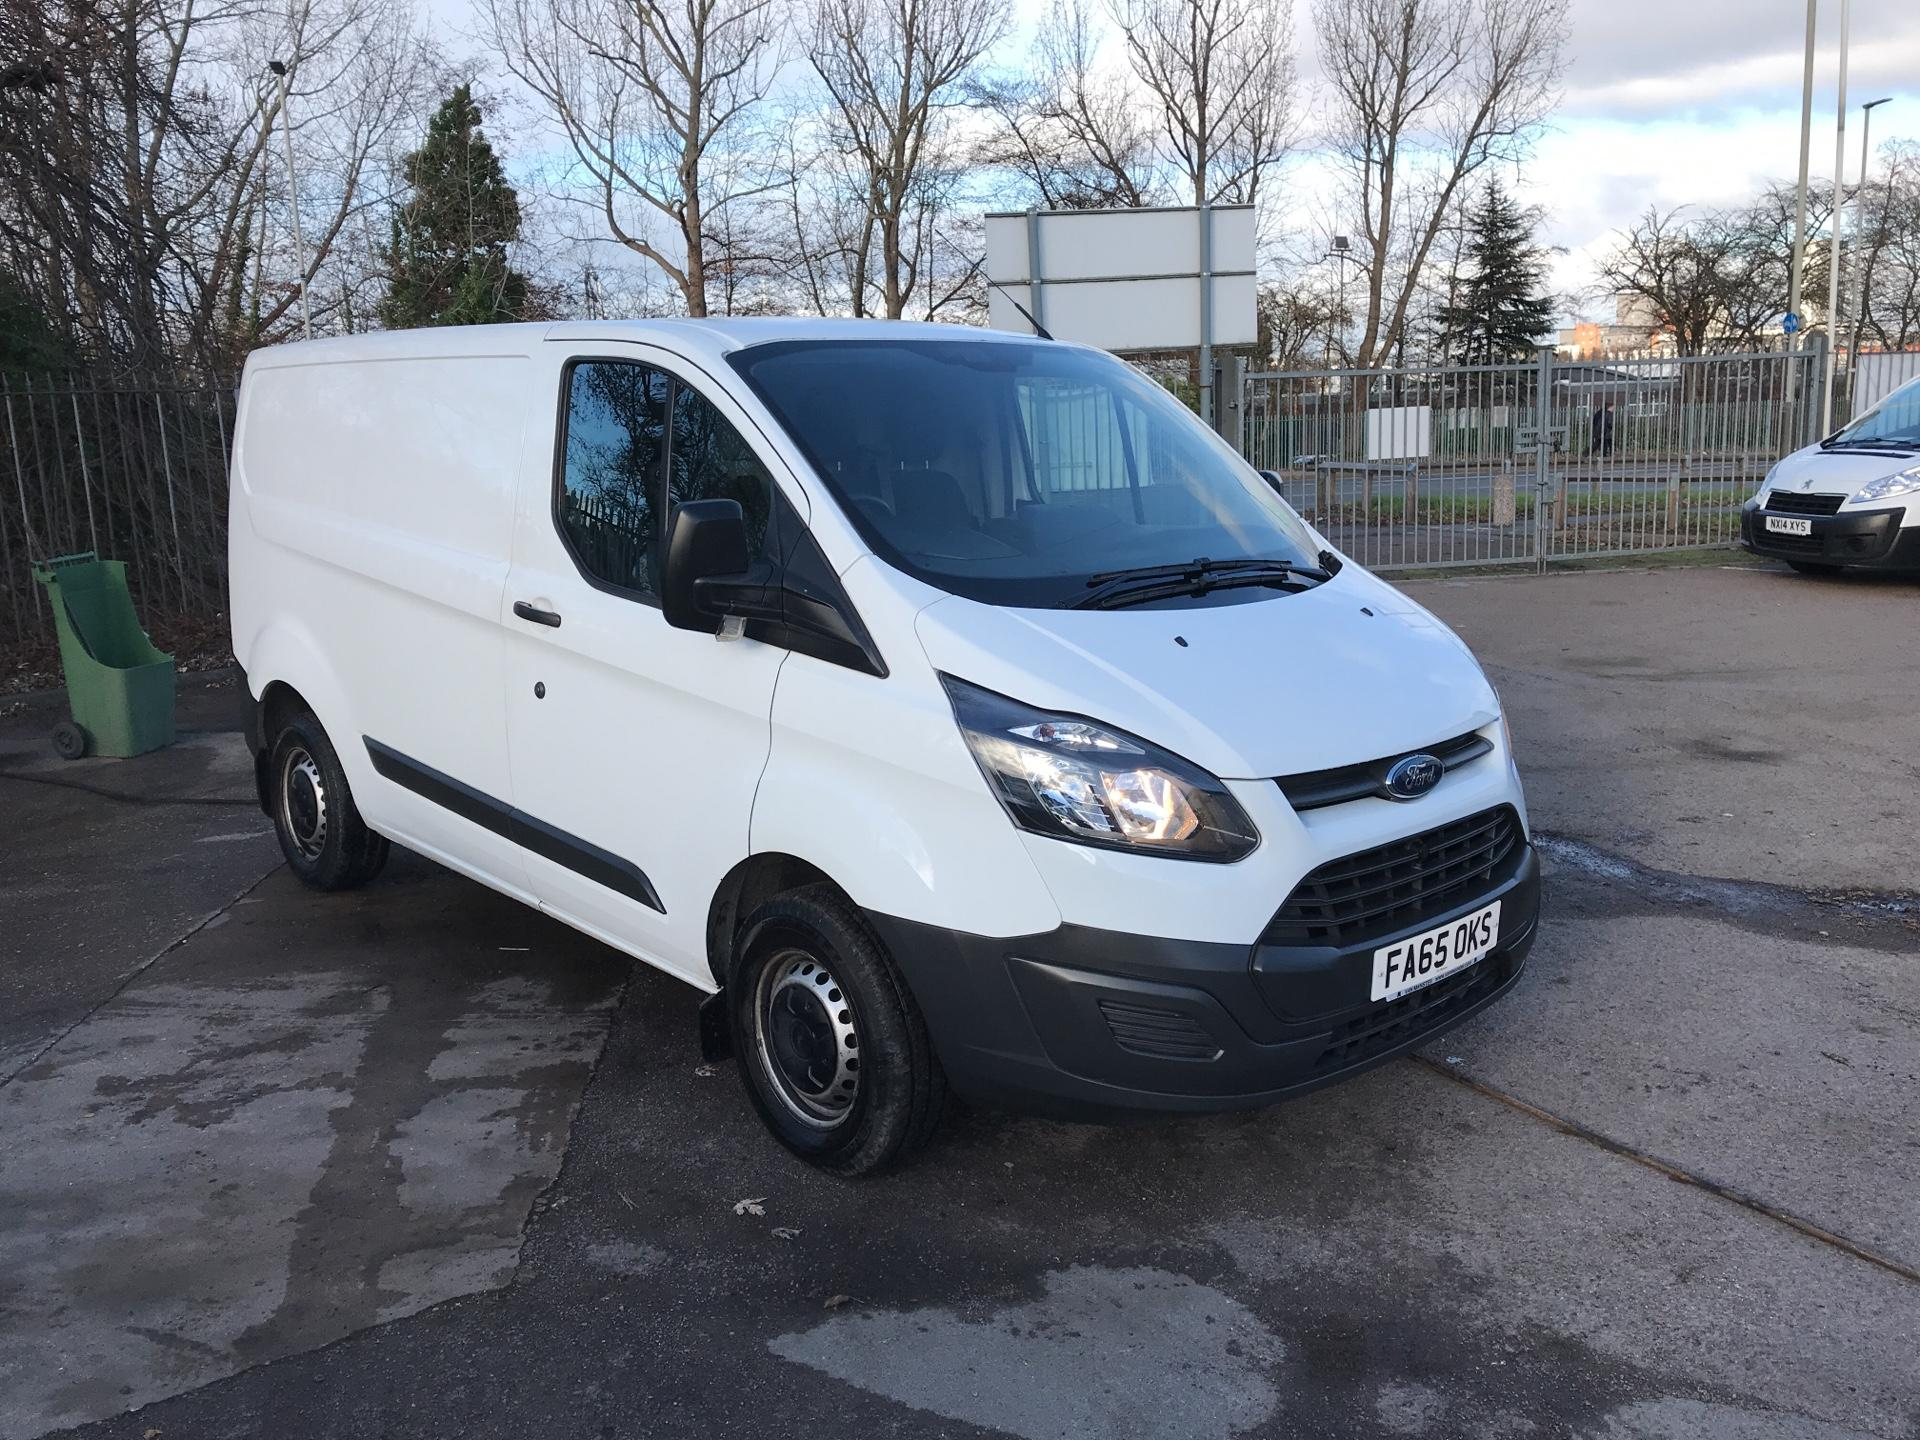 2016 Ford Transit Custom 290 L1 DIESEL FWD 2.2  TDCI 100PS LOW ROOF VAN EURO 5 *VALUE RANGE VEHICLE - CONDITION REFLECTED IN PRICE*  (FA65OKS)